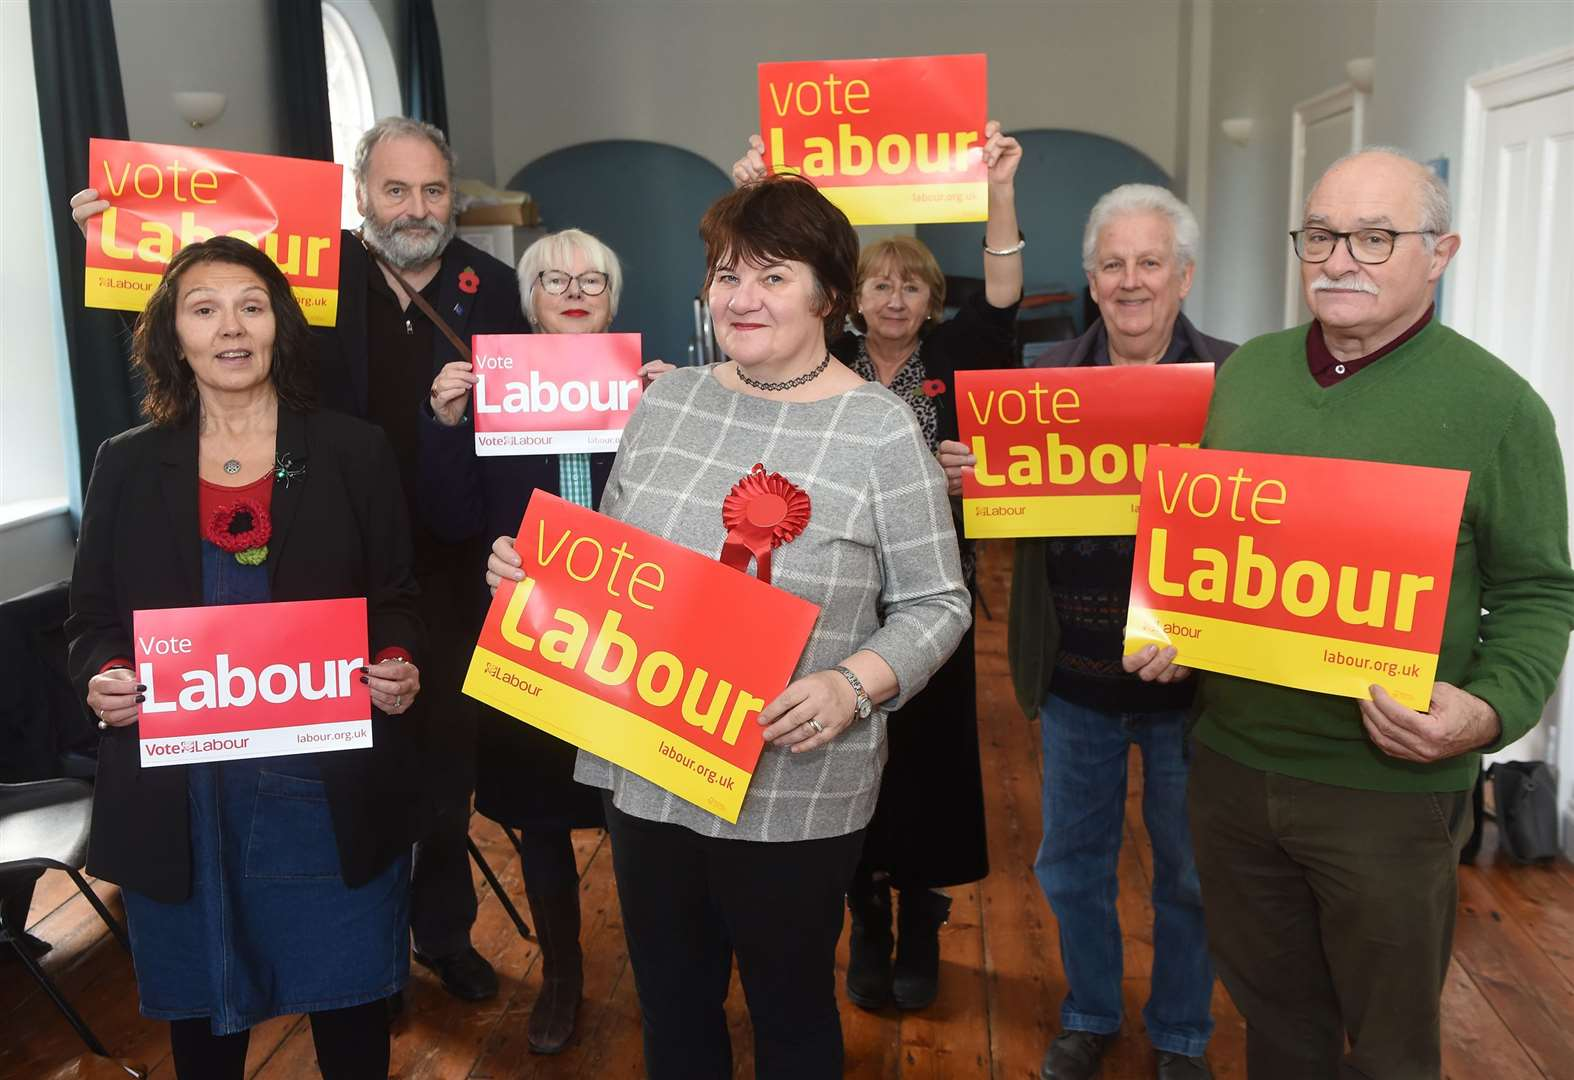 Labour unveils South Suffolk candidate at election campaign launch in Hadleigh